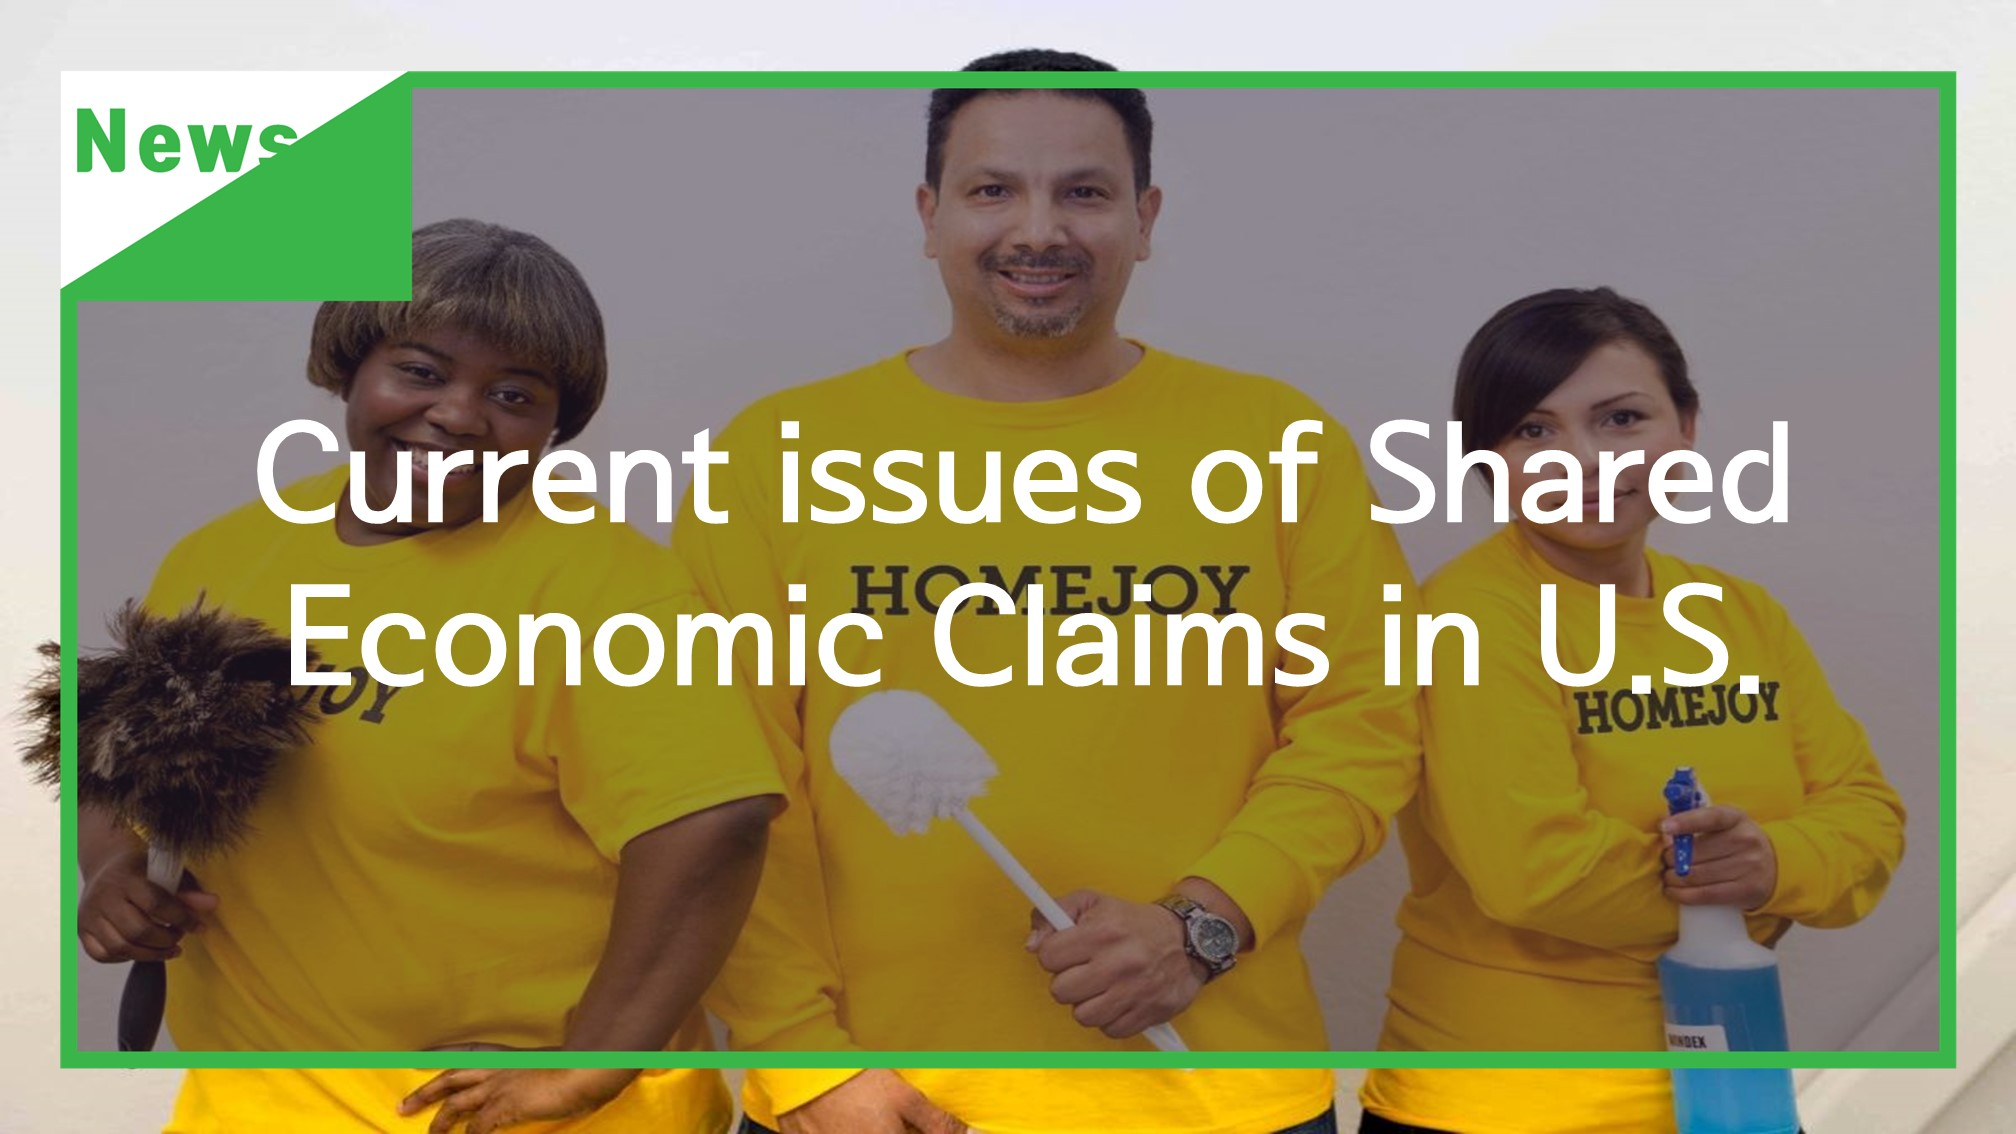 [News] Current issues of Shared Economic Claims in U.S.